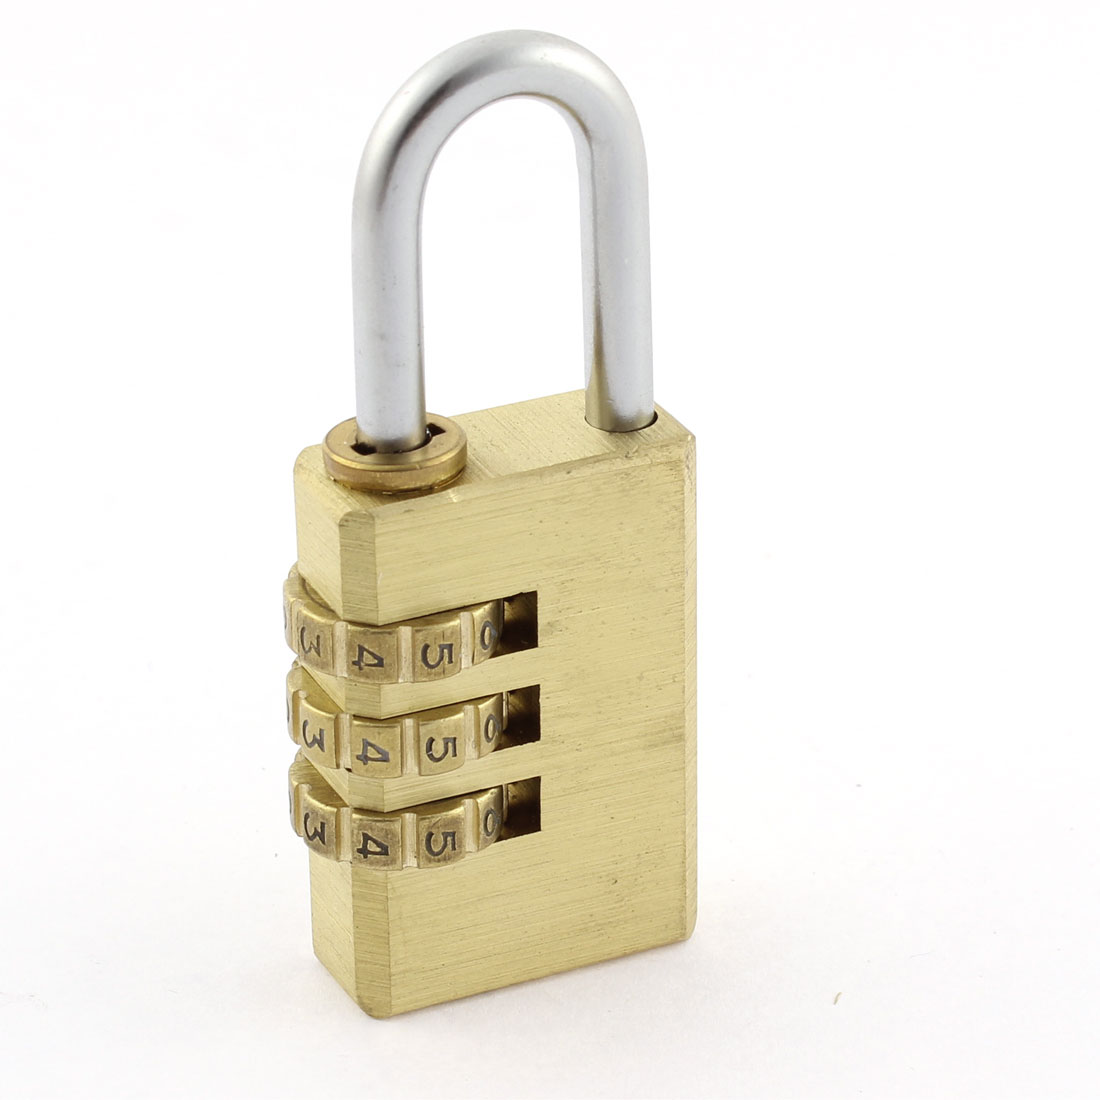 28mm Brass 3 Digit 0-9 Number Resettable Combination Lock Padlock